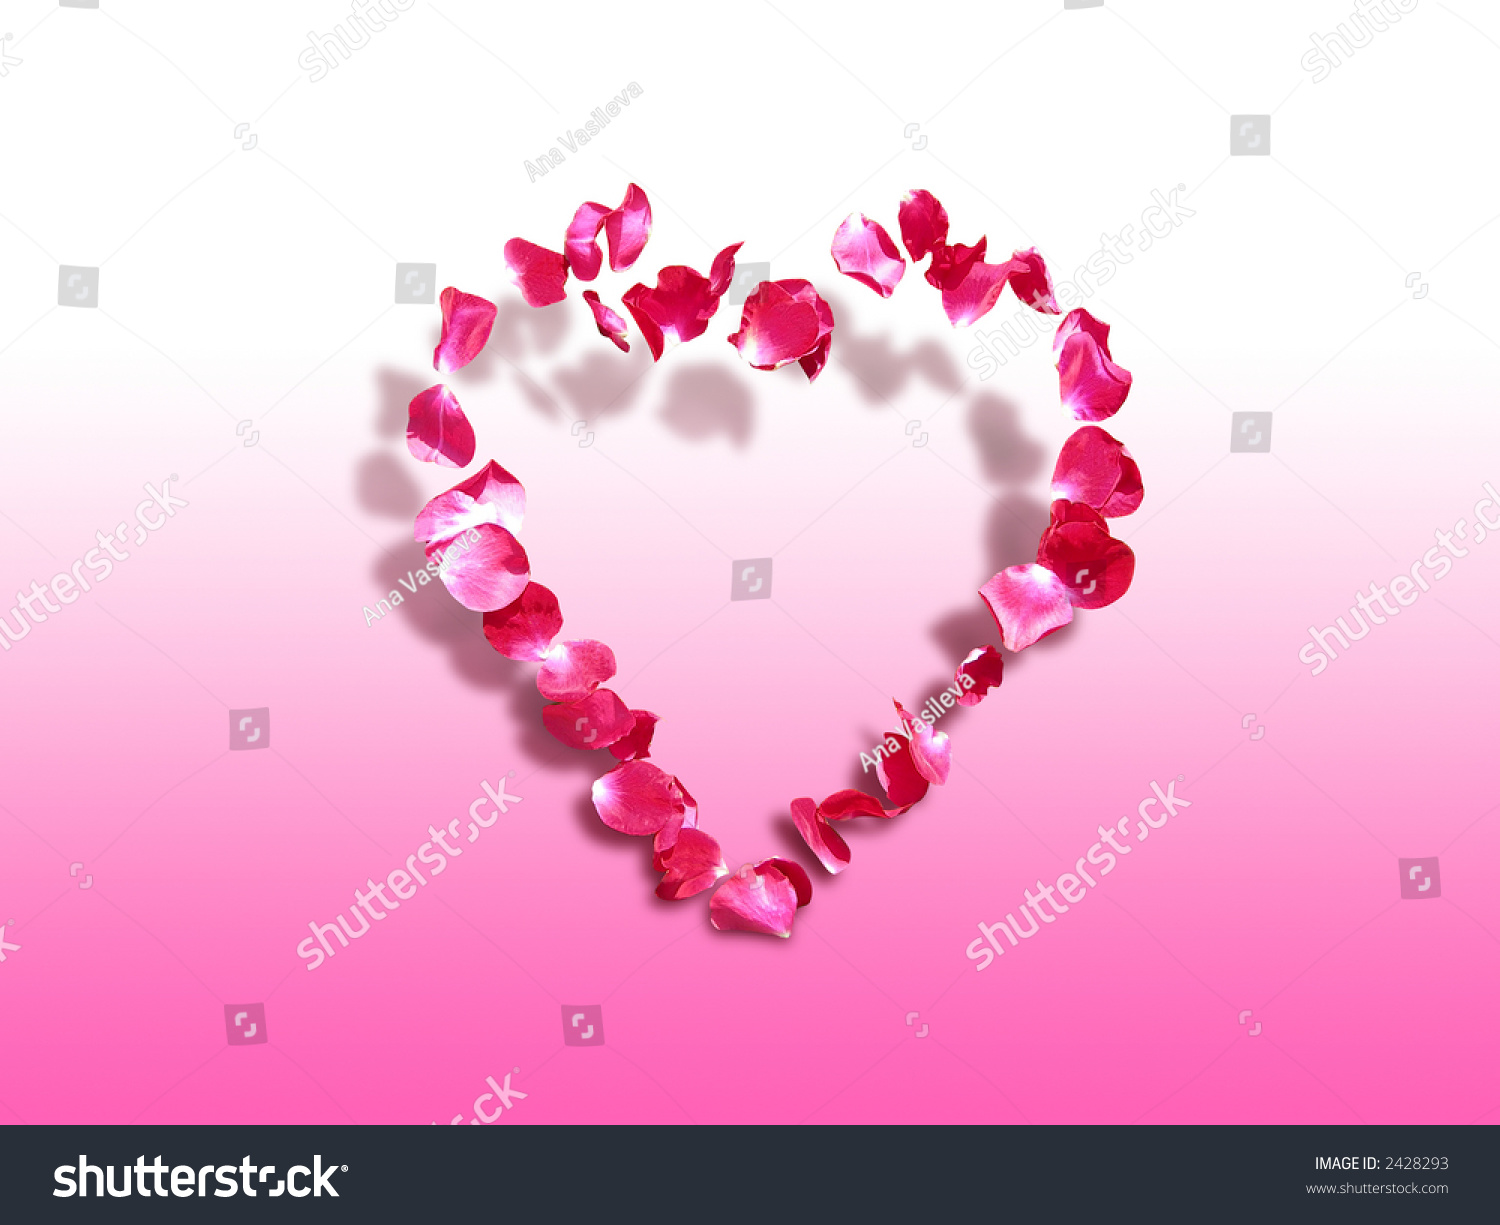 Heart Roses Symbol Love Affection St Stock Photo Edit Now 2428293